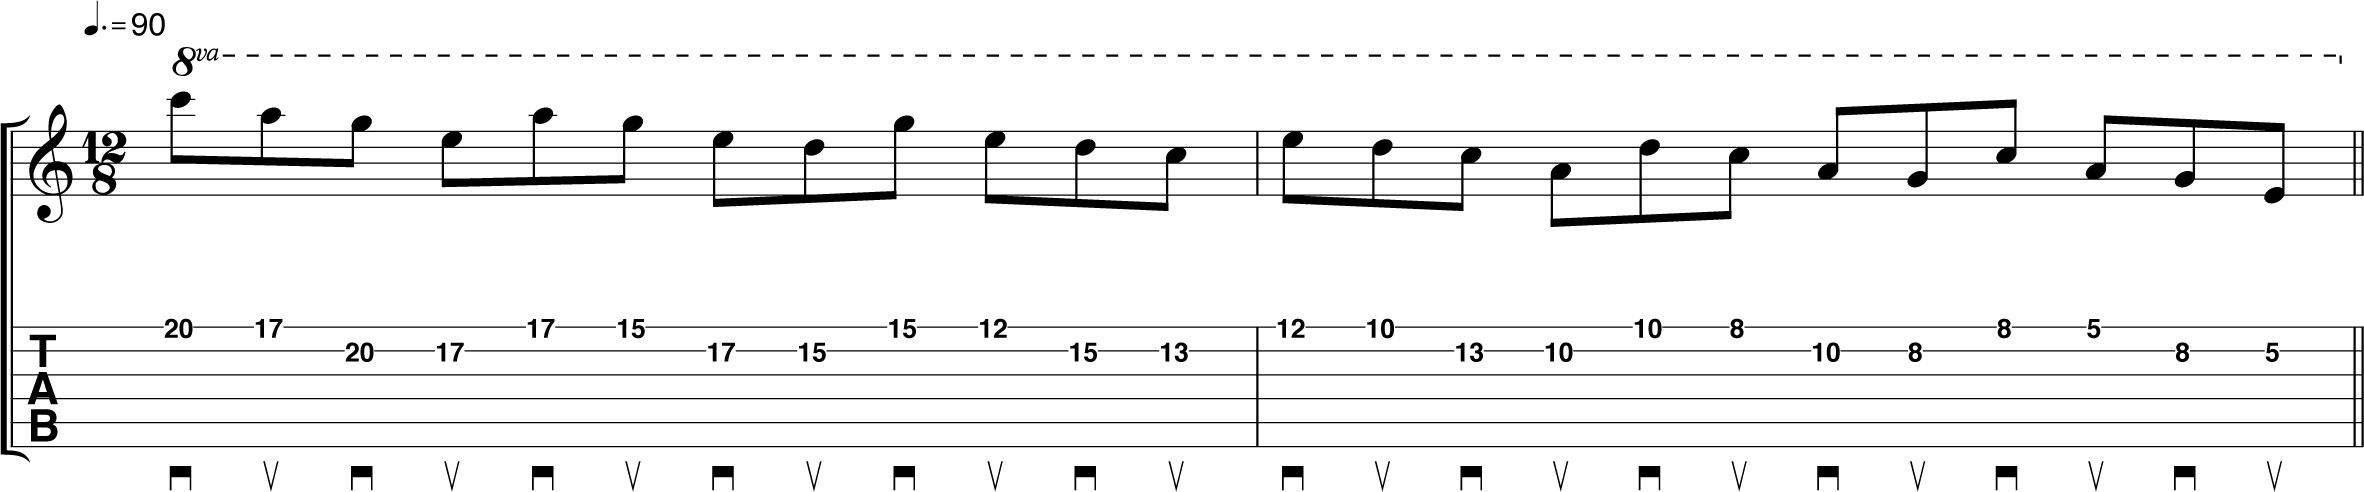 Guitar chords cdefgab image collections guitar chords examples 30 day guitar challenge day 24 an alternate picking masterclass blues lick fatherlandz image collections hexwebz Gallery